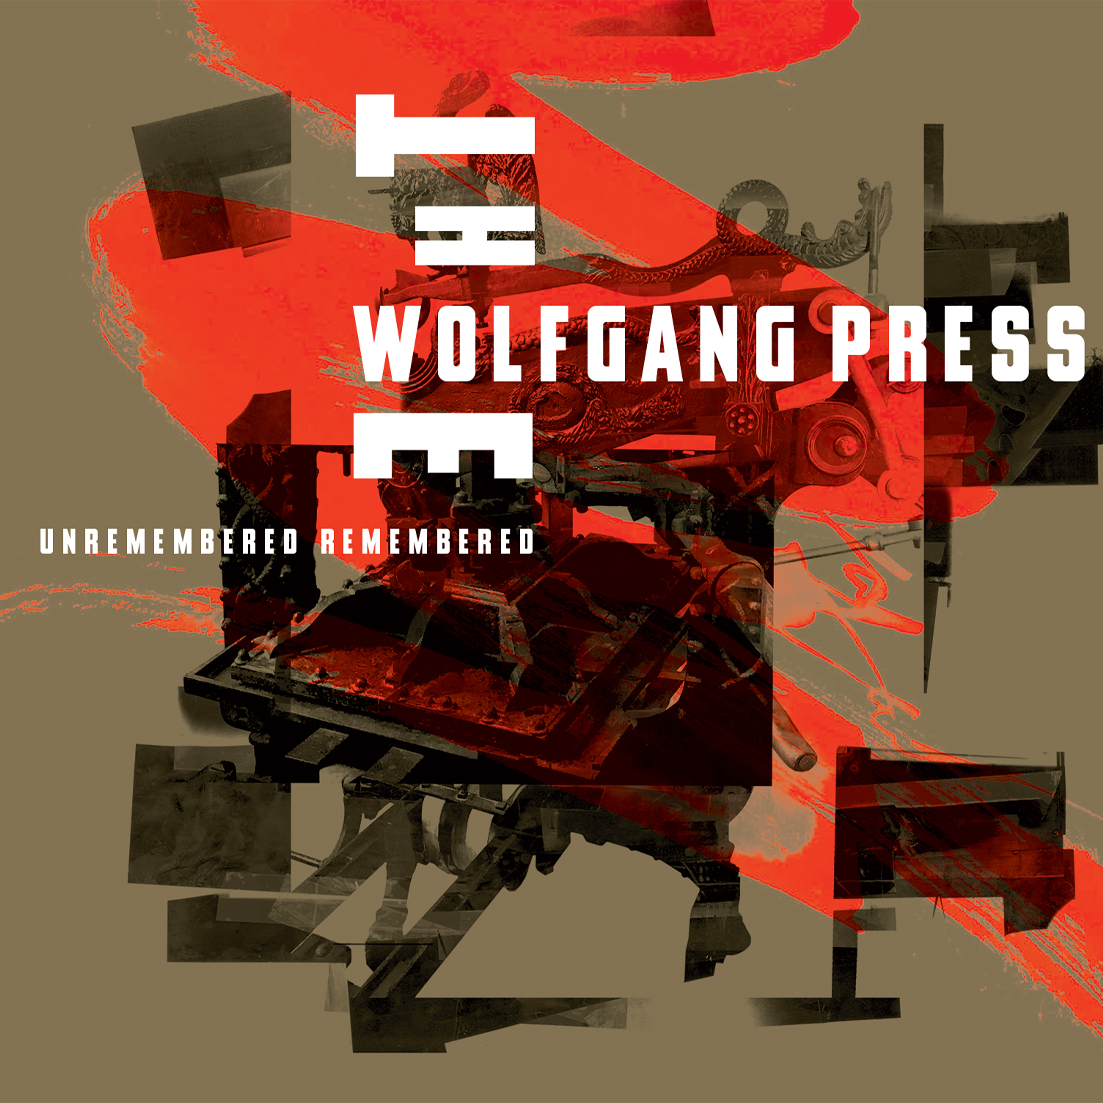 Unremembered, Remembered - The Wolfgang Press